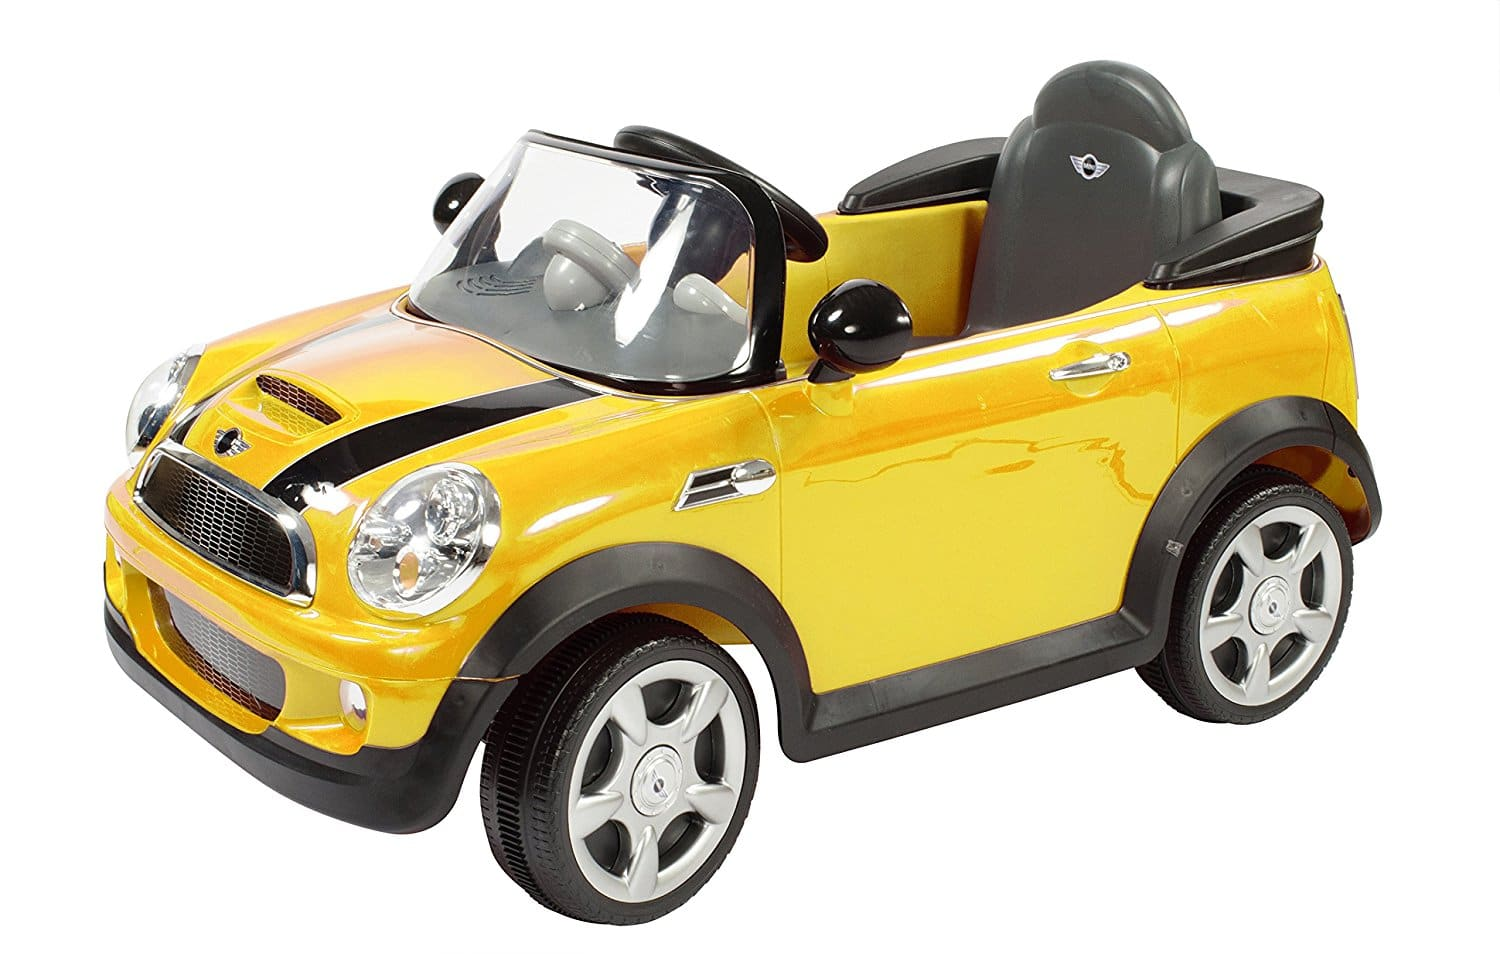 Rollplay Kid's MINI Cooper 6V Battery Powered Ride-On Toy $88.82 + Free Shipping